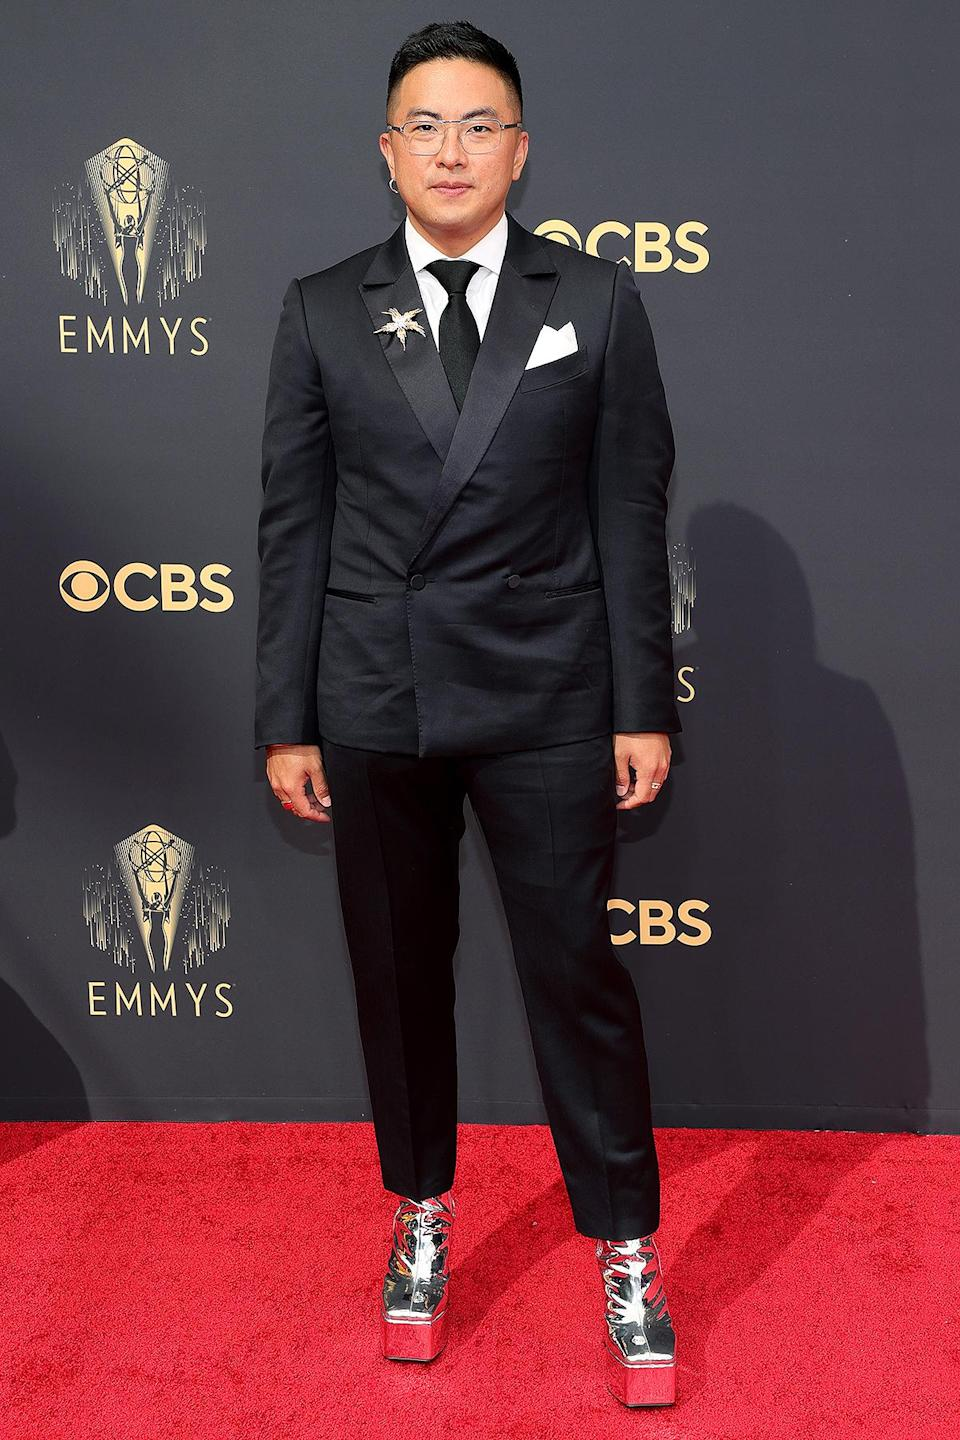 <p>accessorizes his black suit with a star brooch and metallic silver platform shoes.</p>